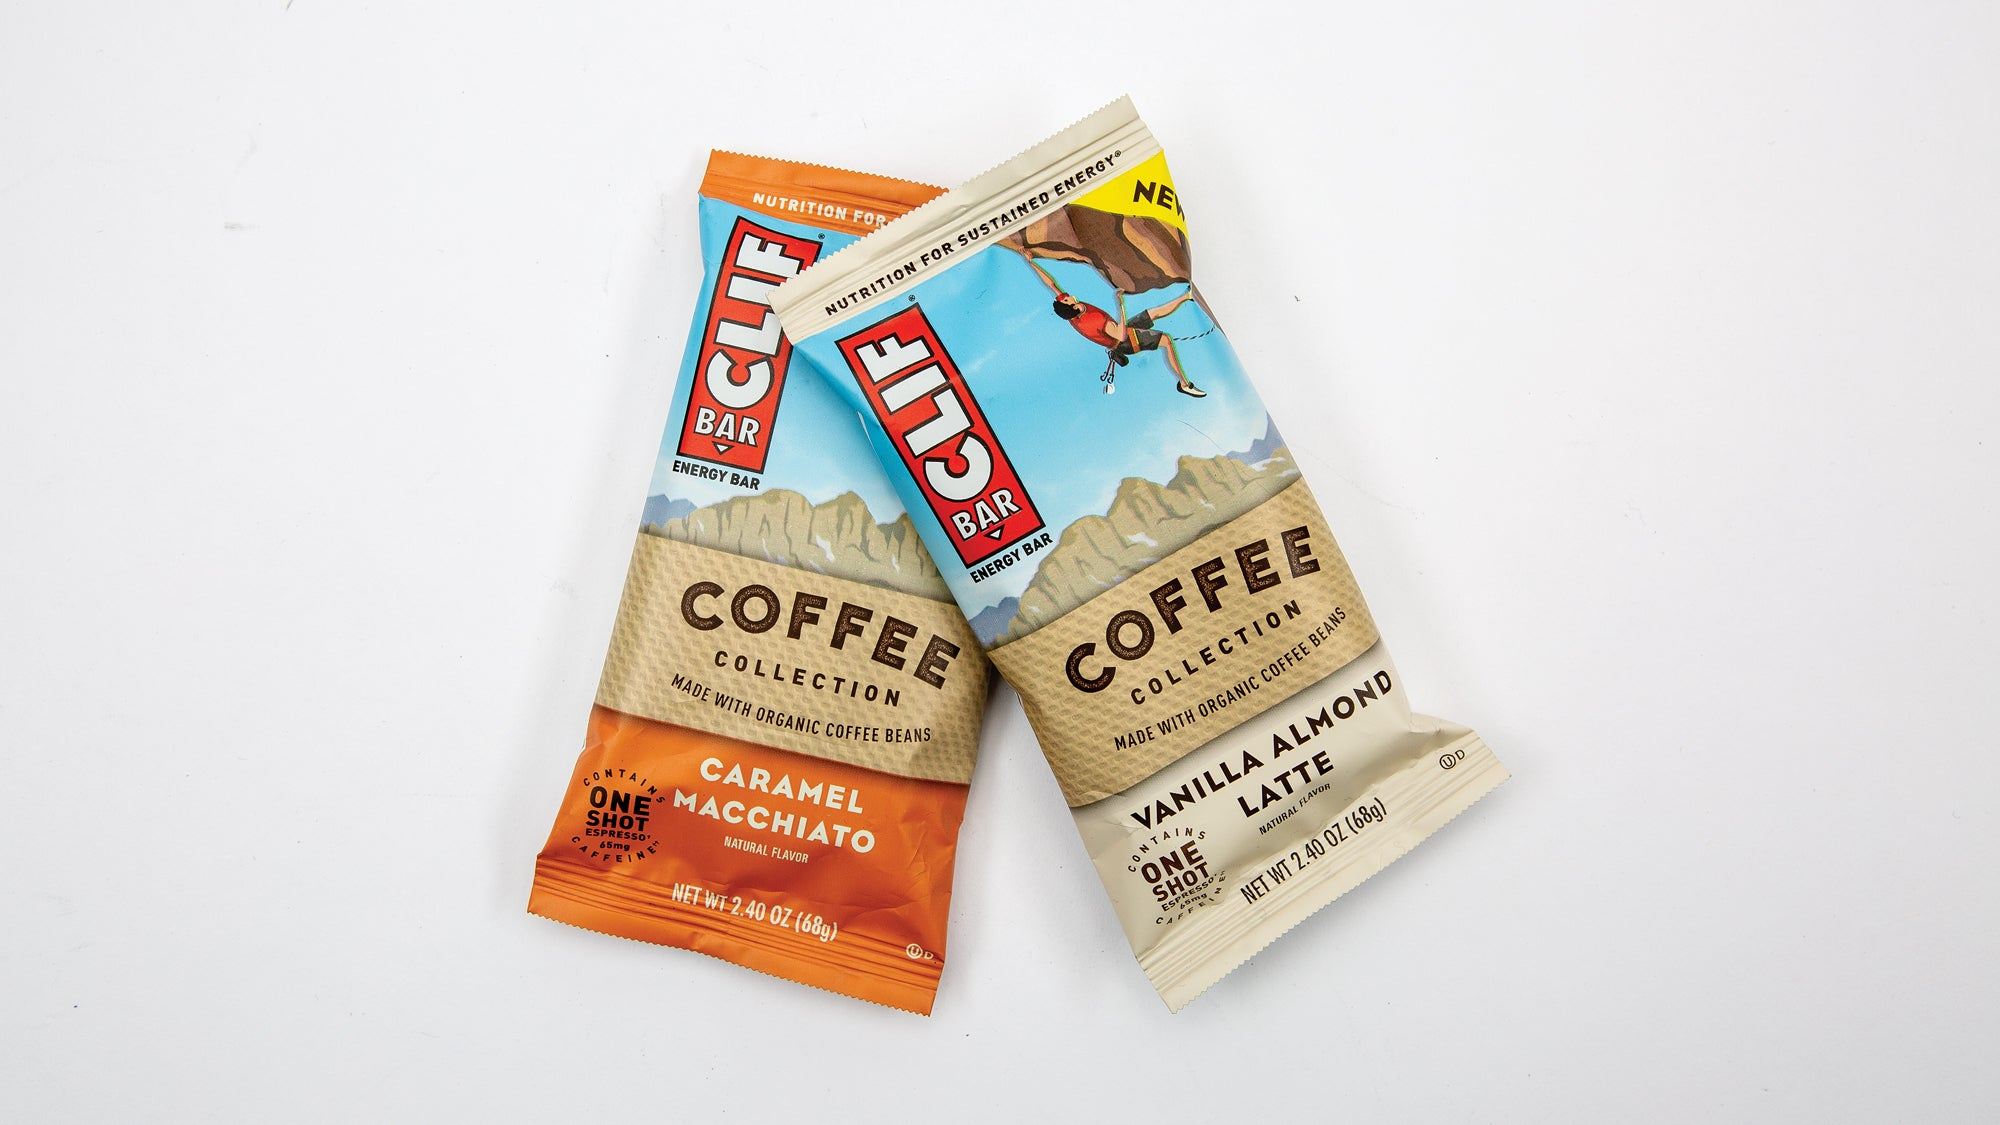 caffeinated nutrition products